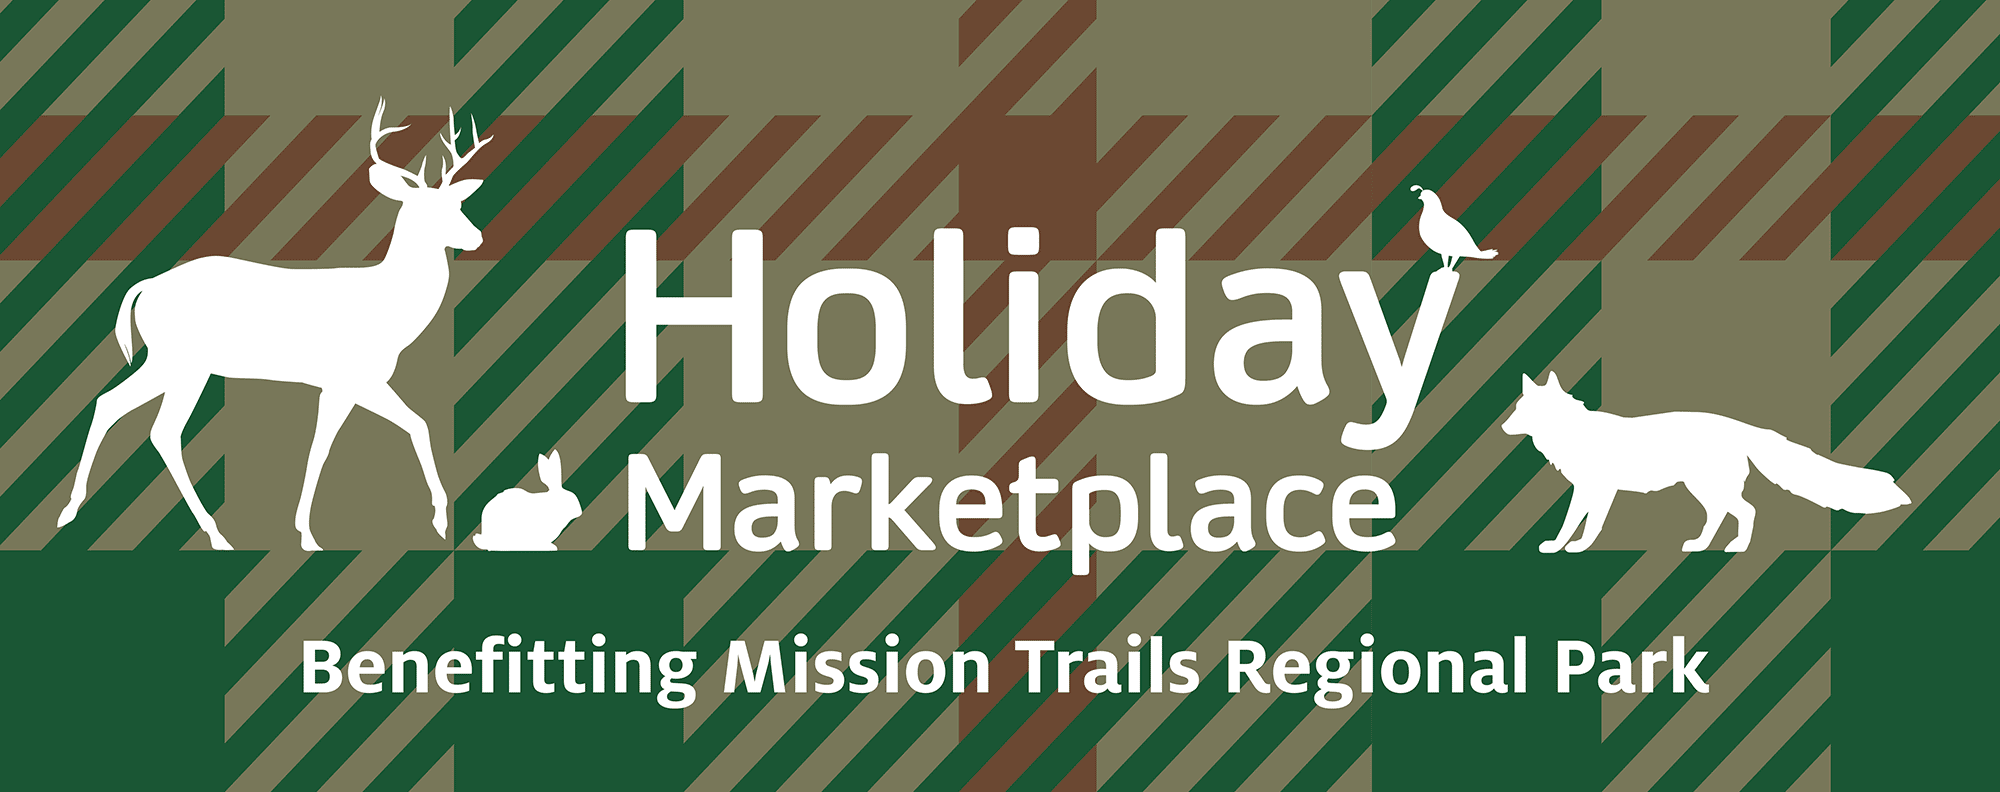 Holiday Marketplace to benefit Mission Trails Regional Park